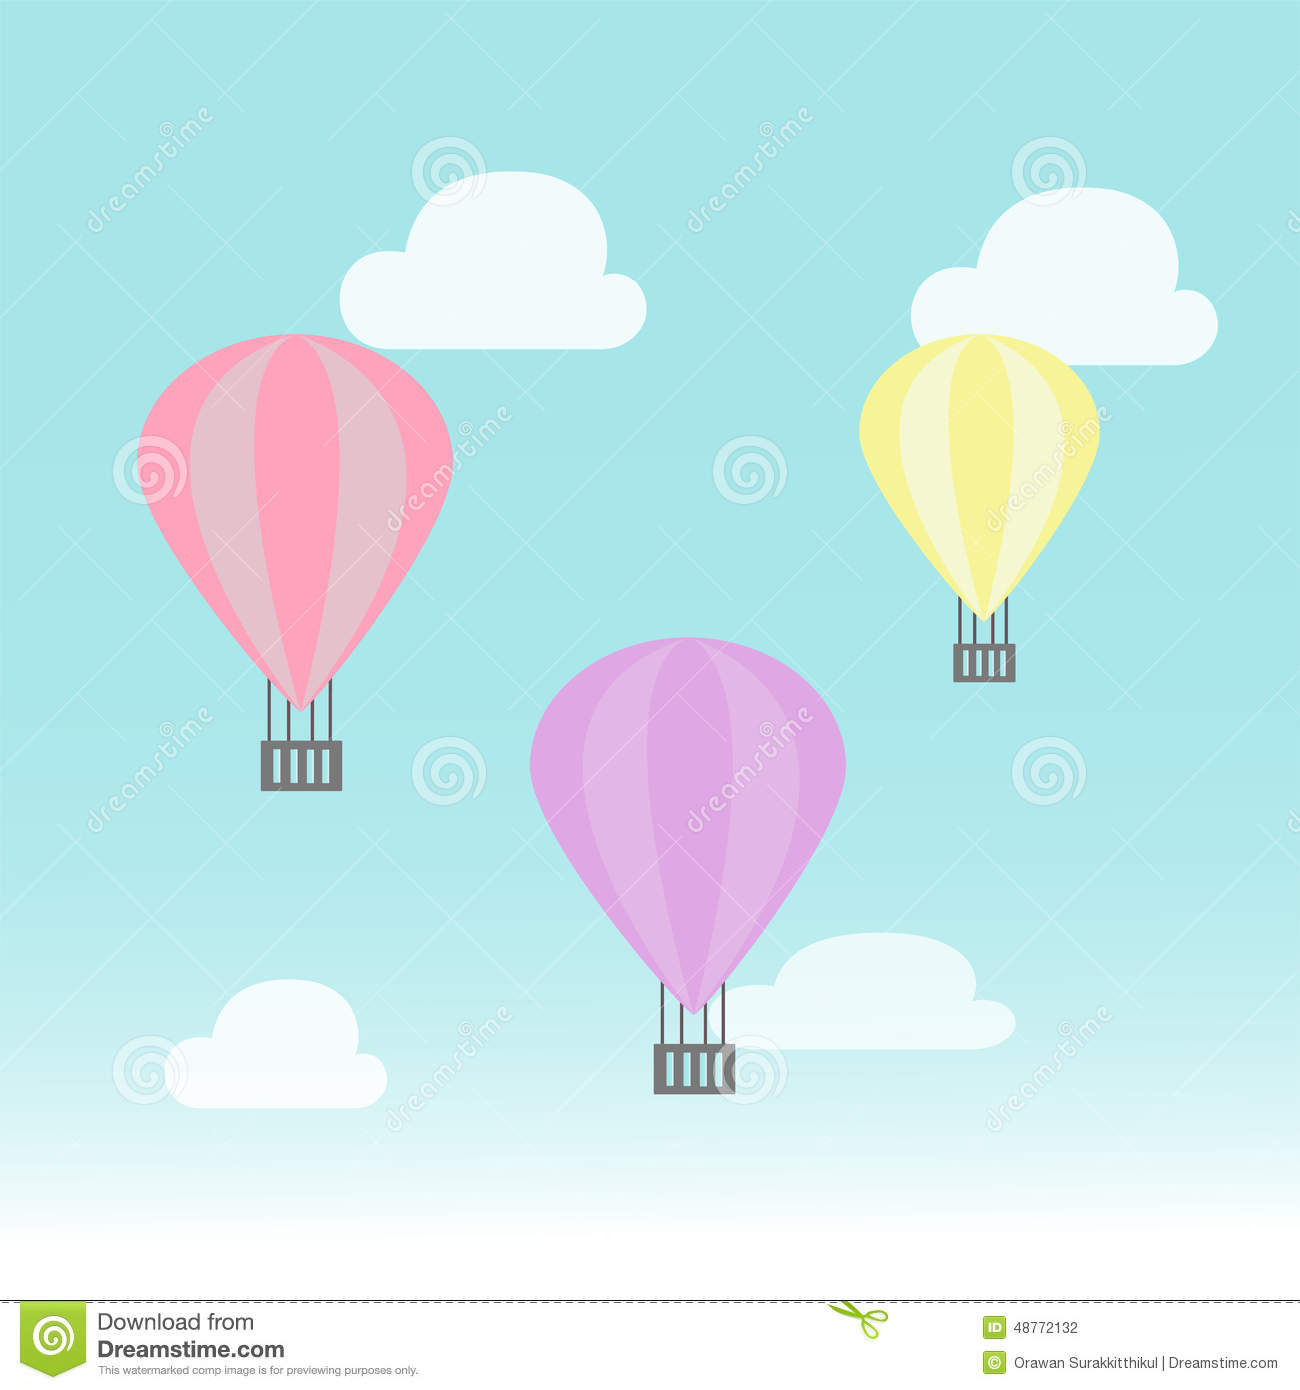 Balloon In The Sky Stock Vector Illustration Of Blue 48772132